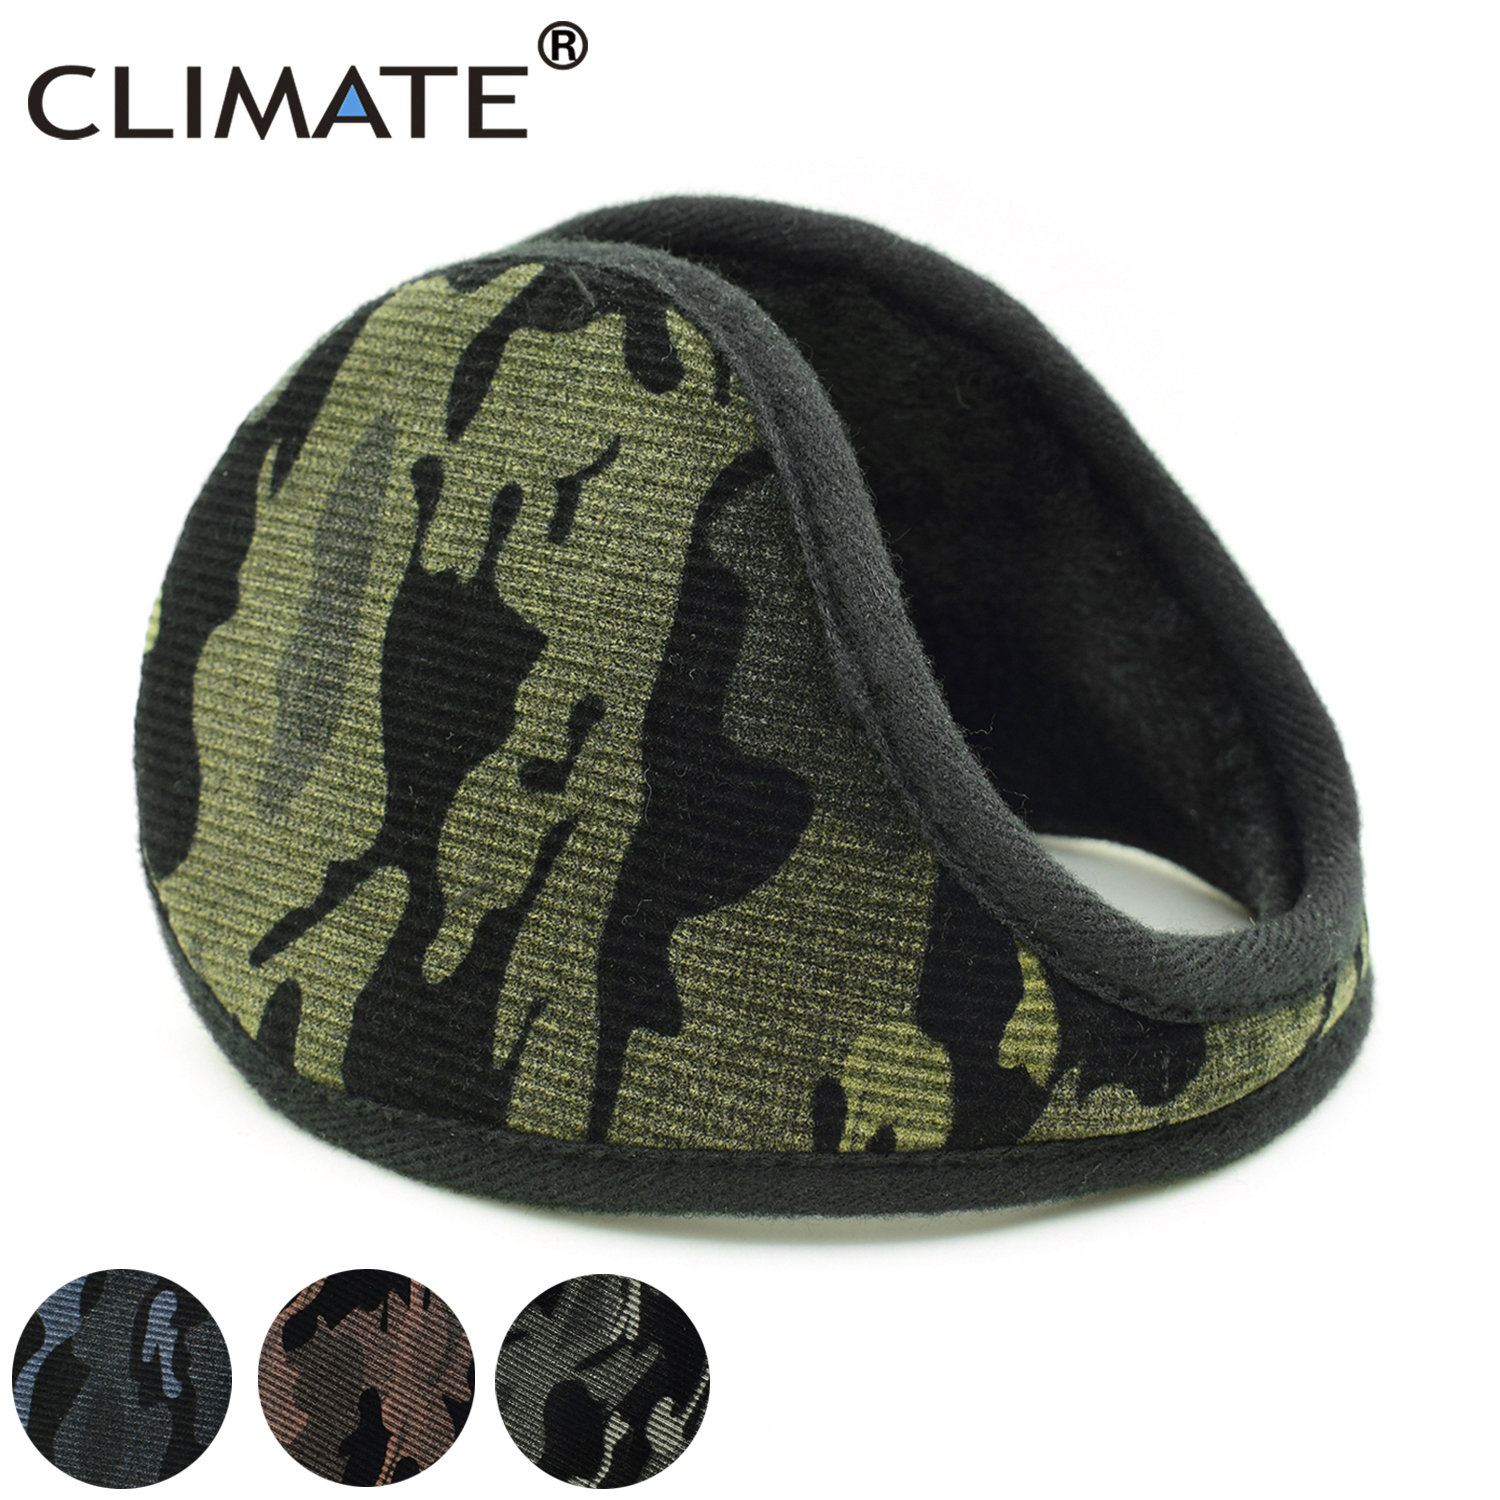 230131f0cc64b CLIMATE Men Camouflage Earmuffs Men Winter Ear Warmer Cover Camou Muff Cool  Army Warm Ear Muff Military Ear Muffs for Men Women-in Earmuffs from  Apparel ...